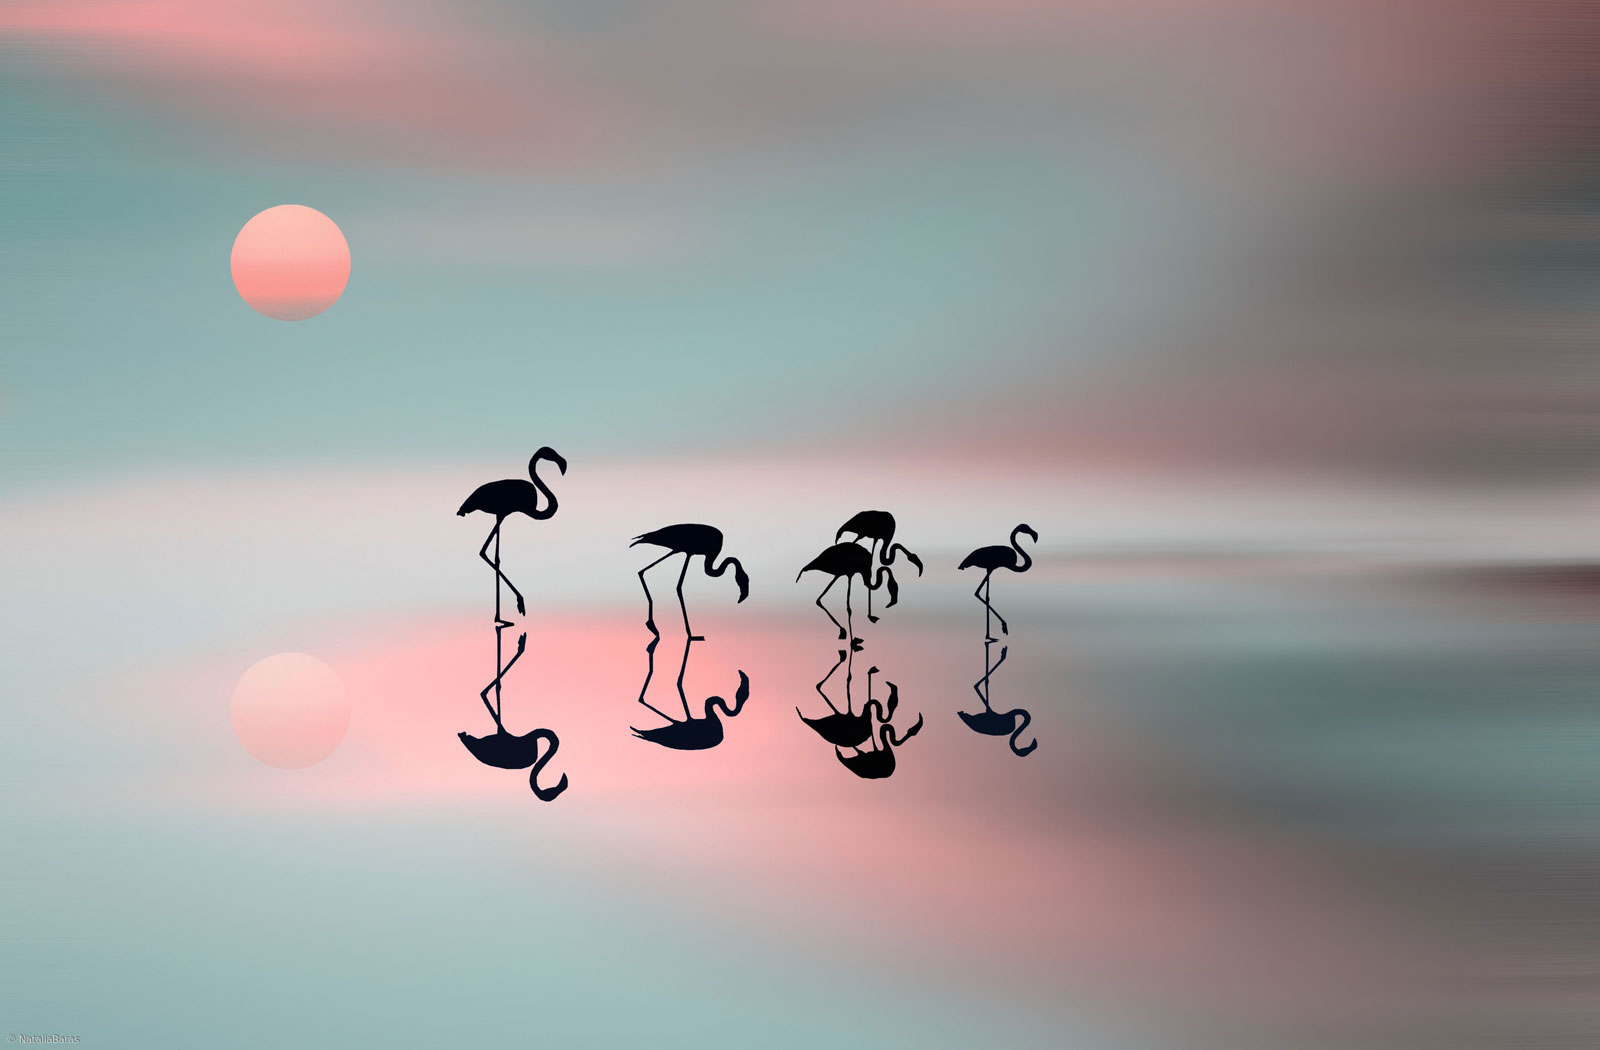 reflection photography flamingos silouette by natalia baras